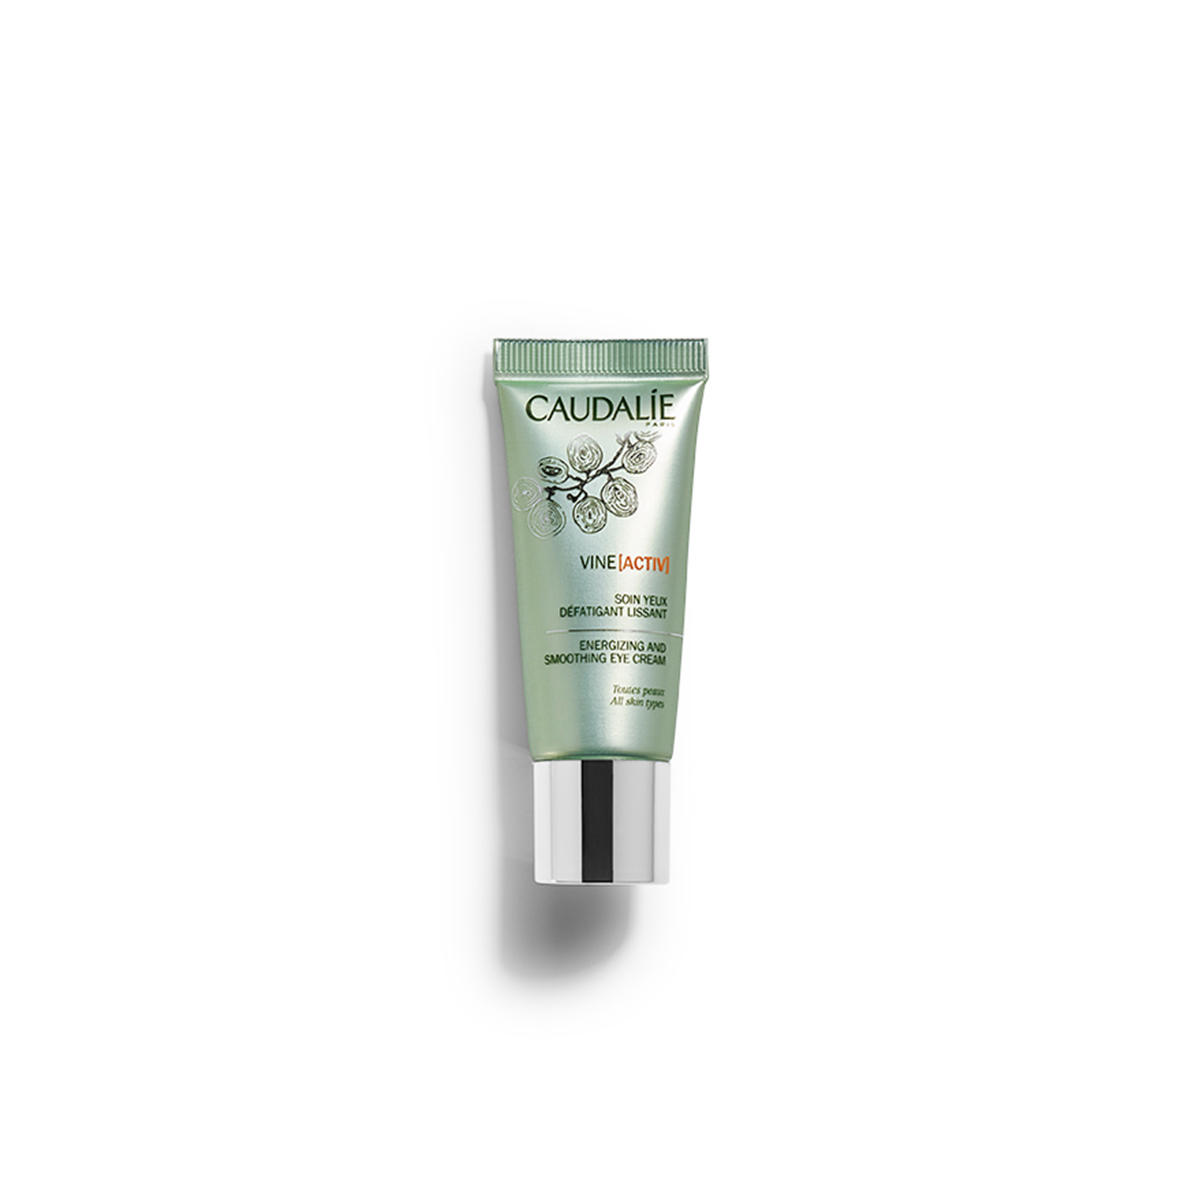 Vine[Activ] Energizing and Smoothing Eye Cream